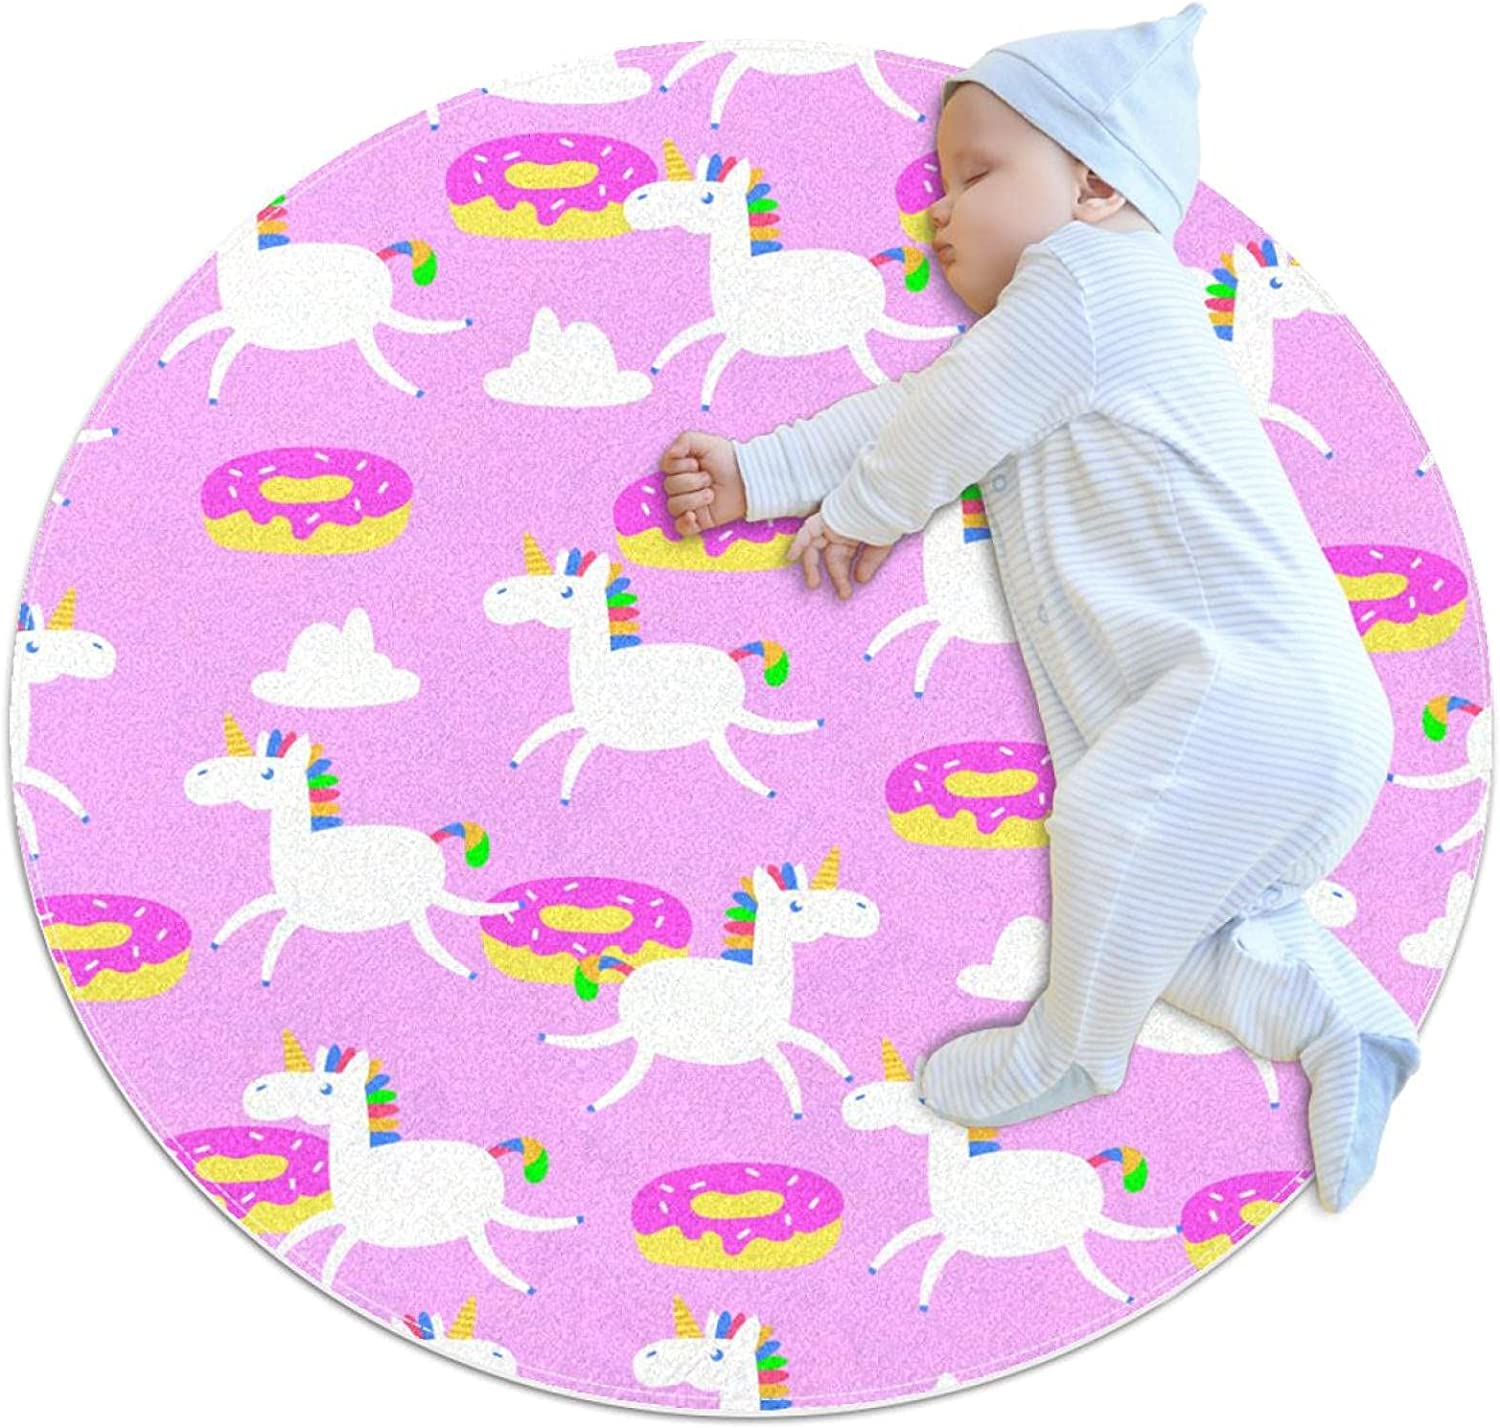 Pink Unicorn OFFicial Super Special SALE held mail order Polyester Kids Crawling Non-Slip Educational N Mat